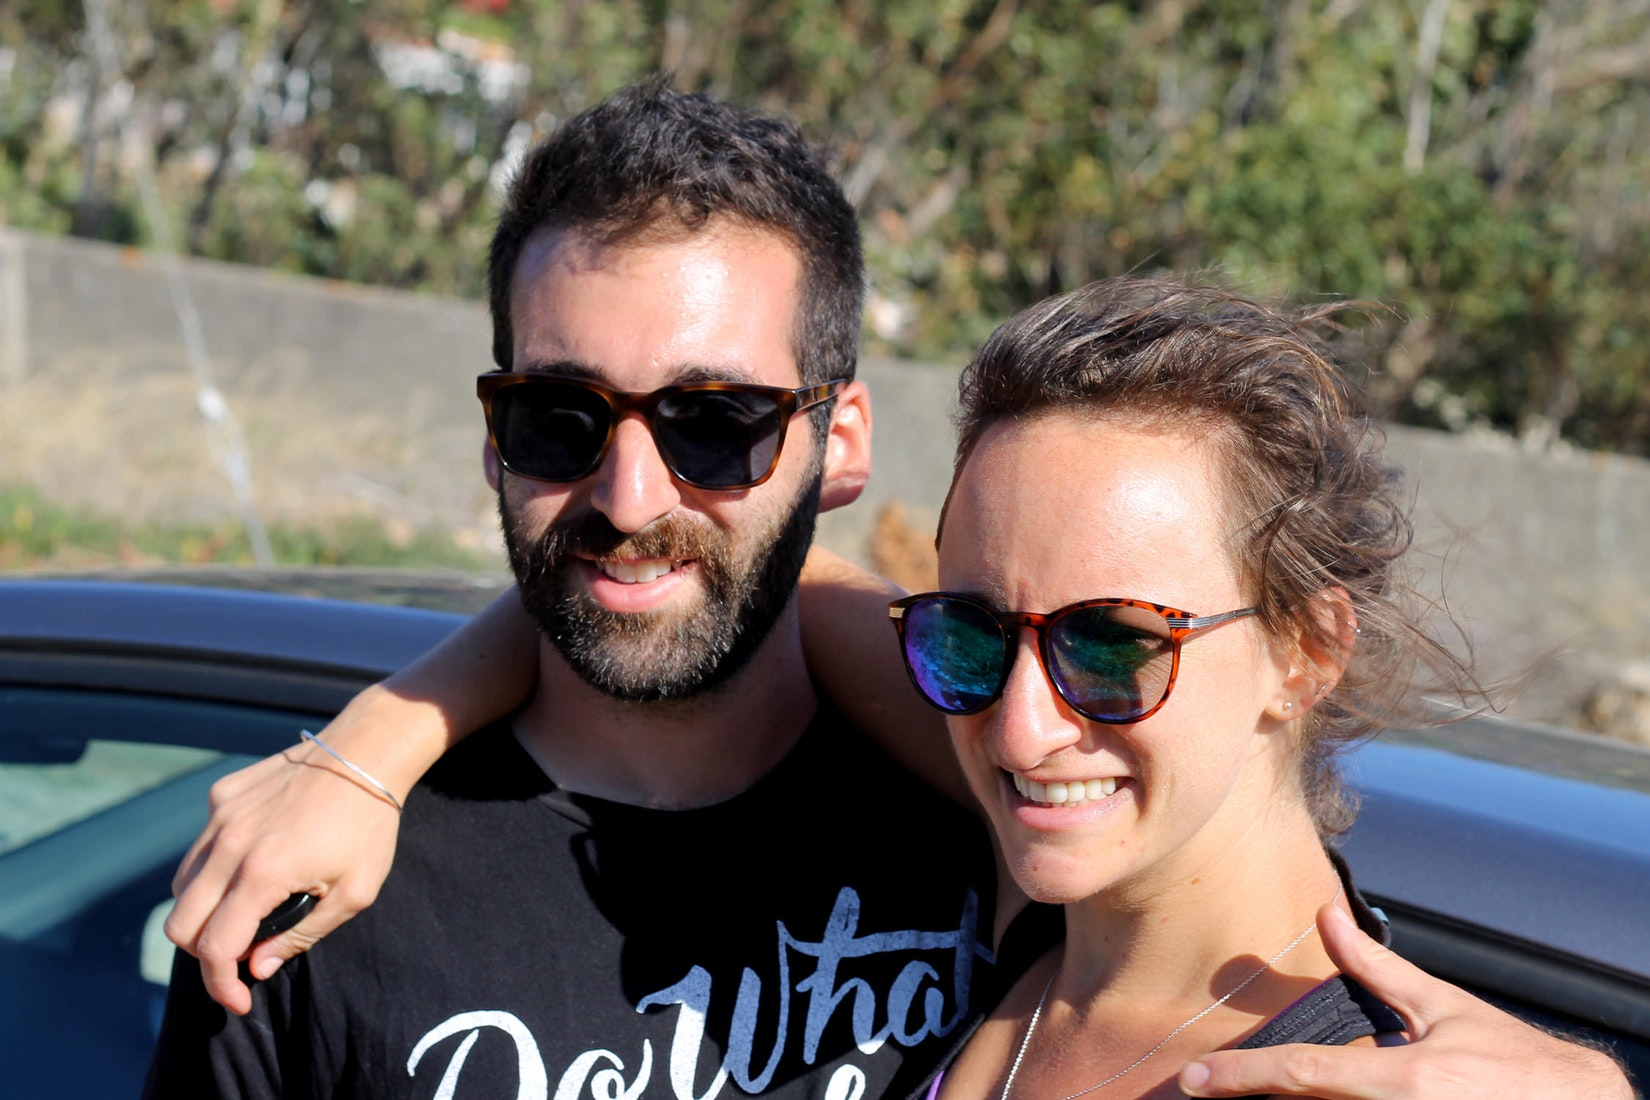 Boyfriend and girlfriend wearings sunglasses on a sunny day in Portugal after a hike